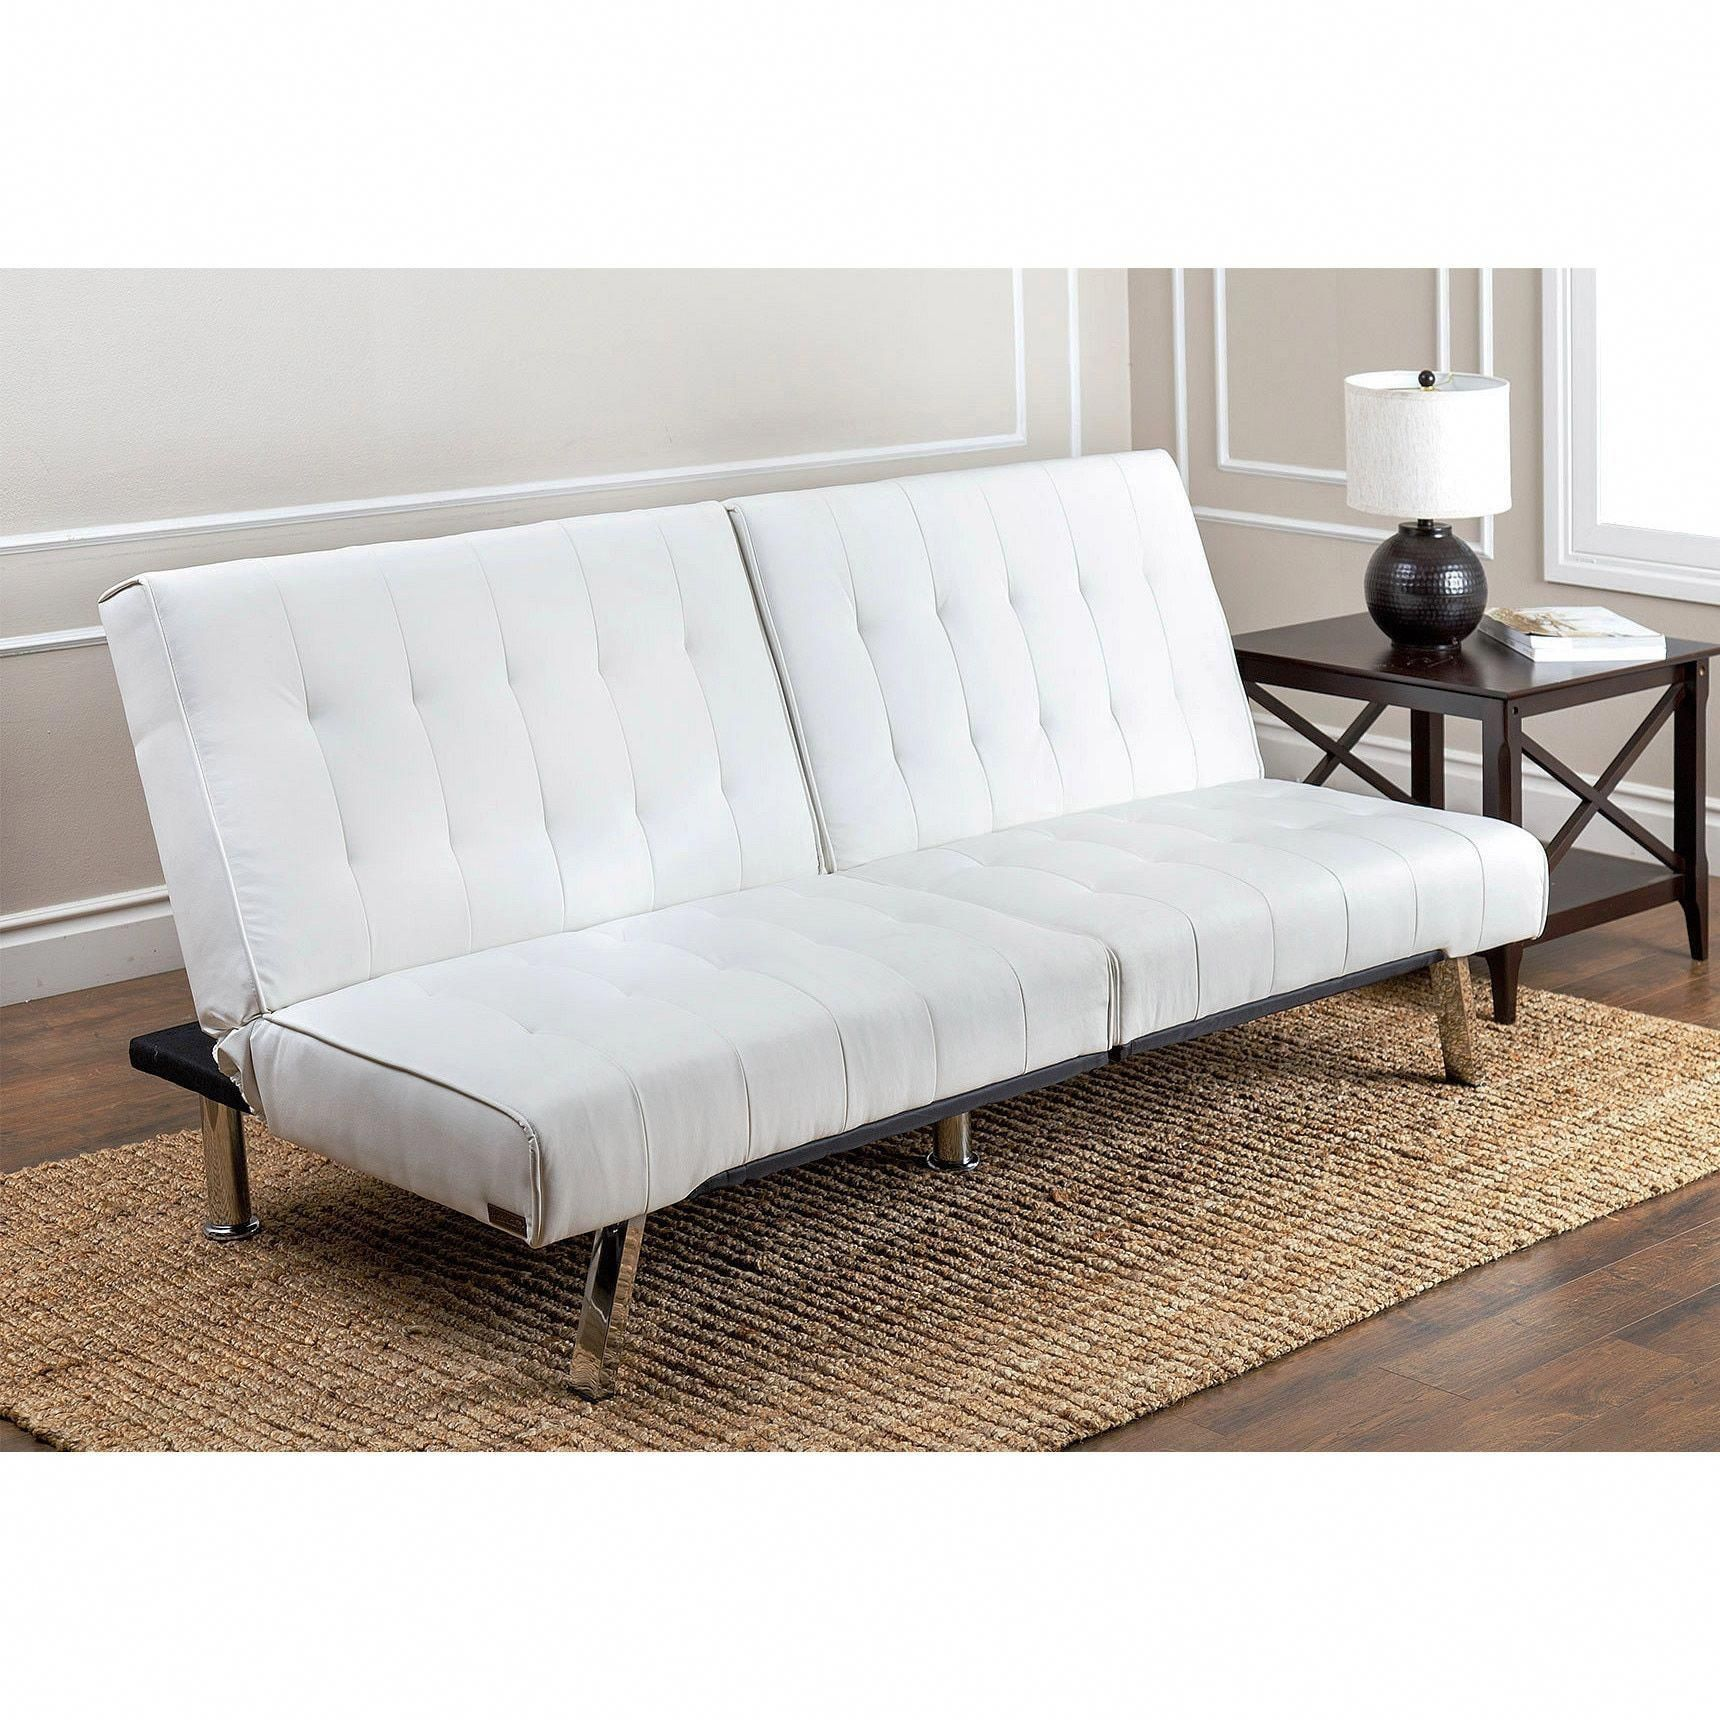 Remarkable Abbyson Living Jackson Ivory Leather Foldable Futon Sofa Bed Onthecornerstone Fun Painted Chair Ideas Images Onthecornerstoneorg